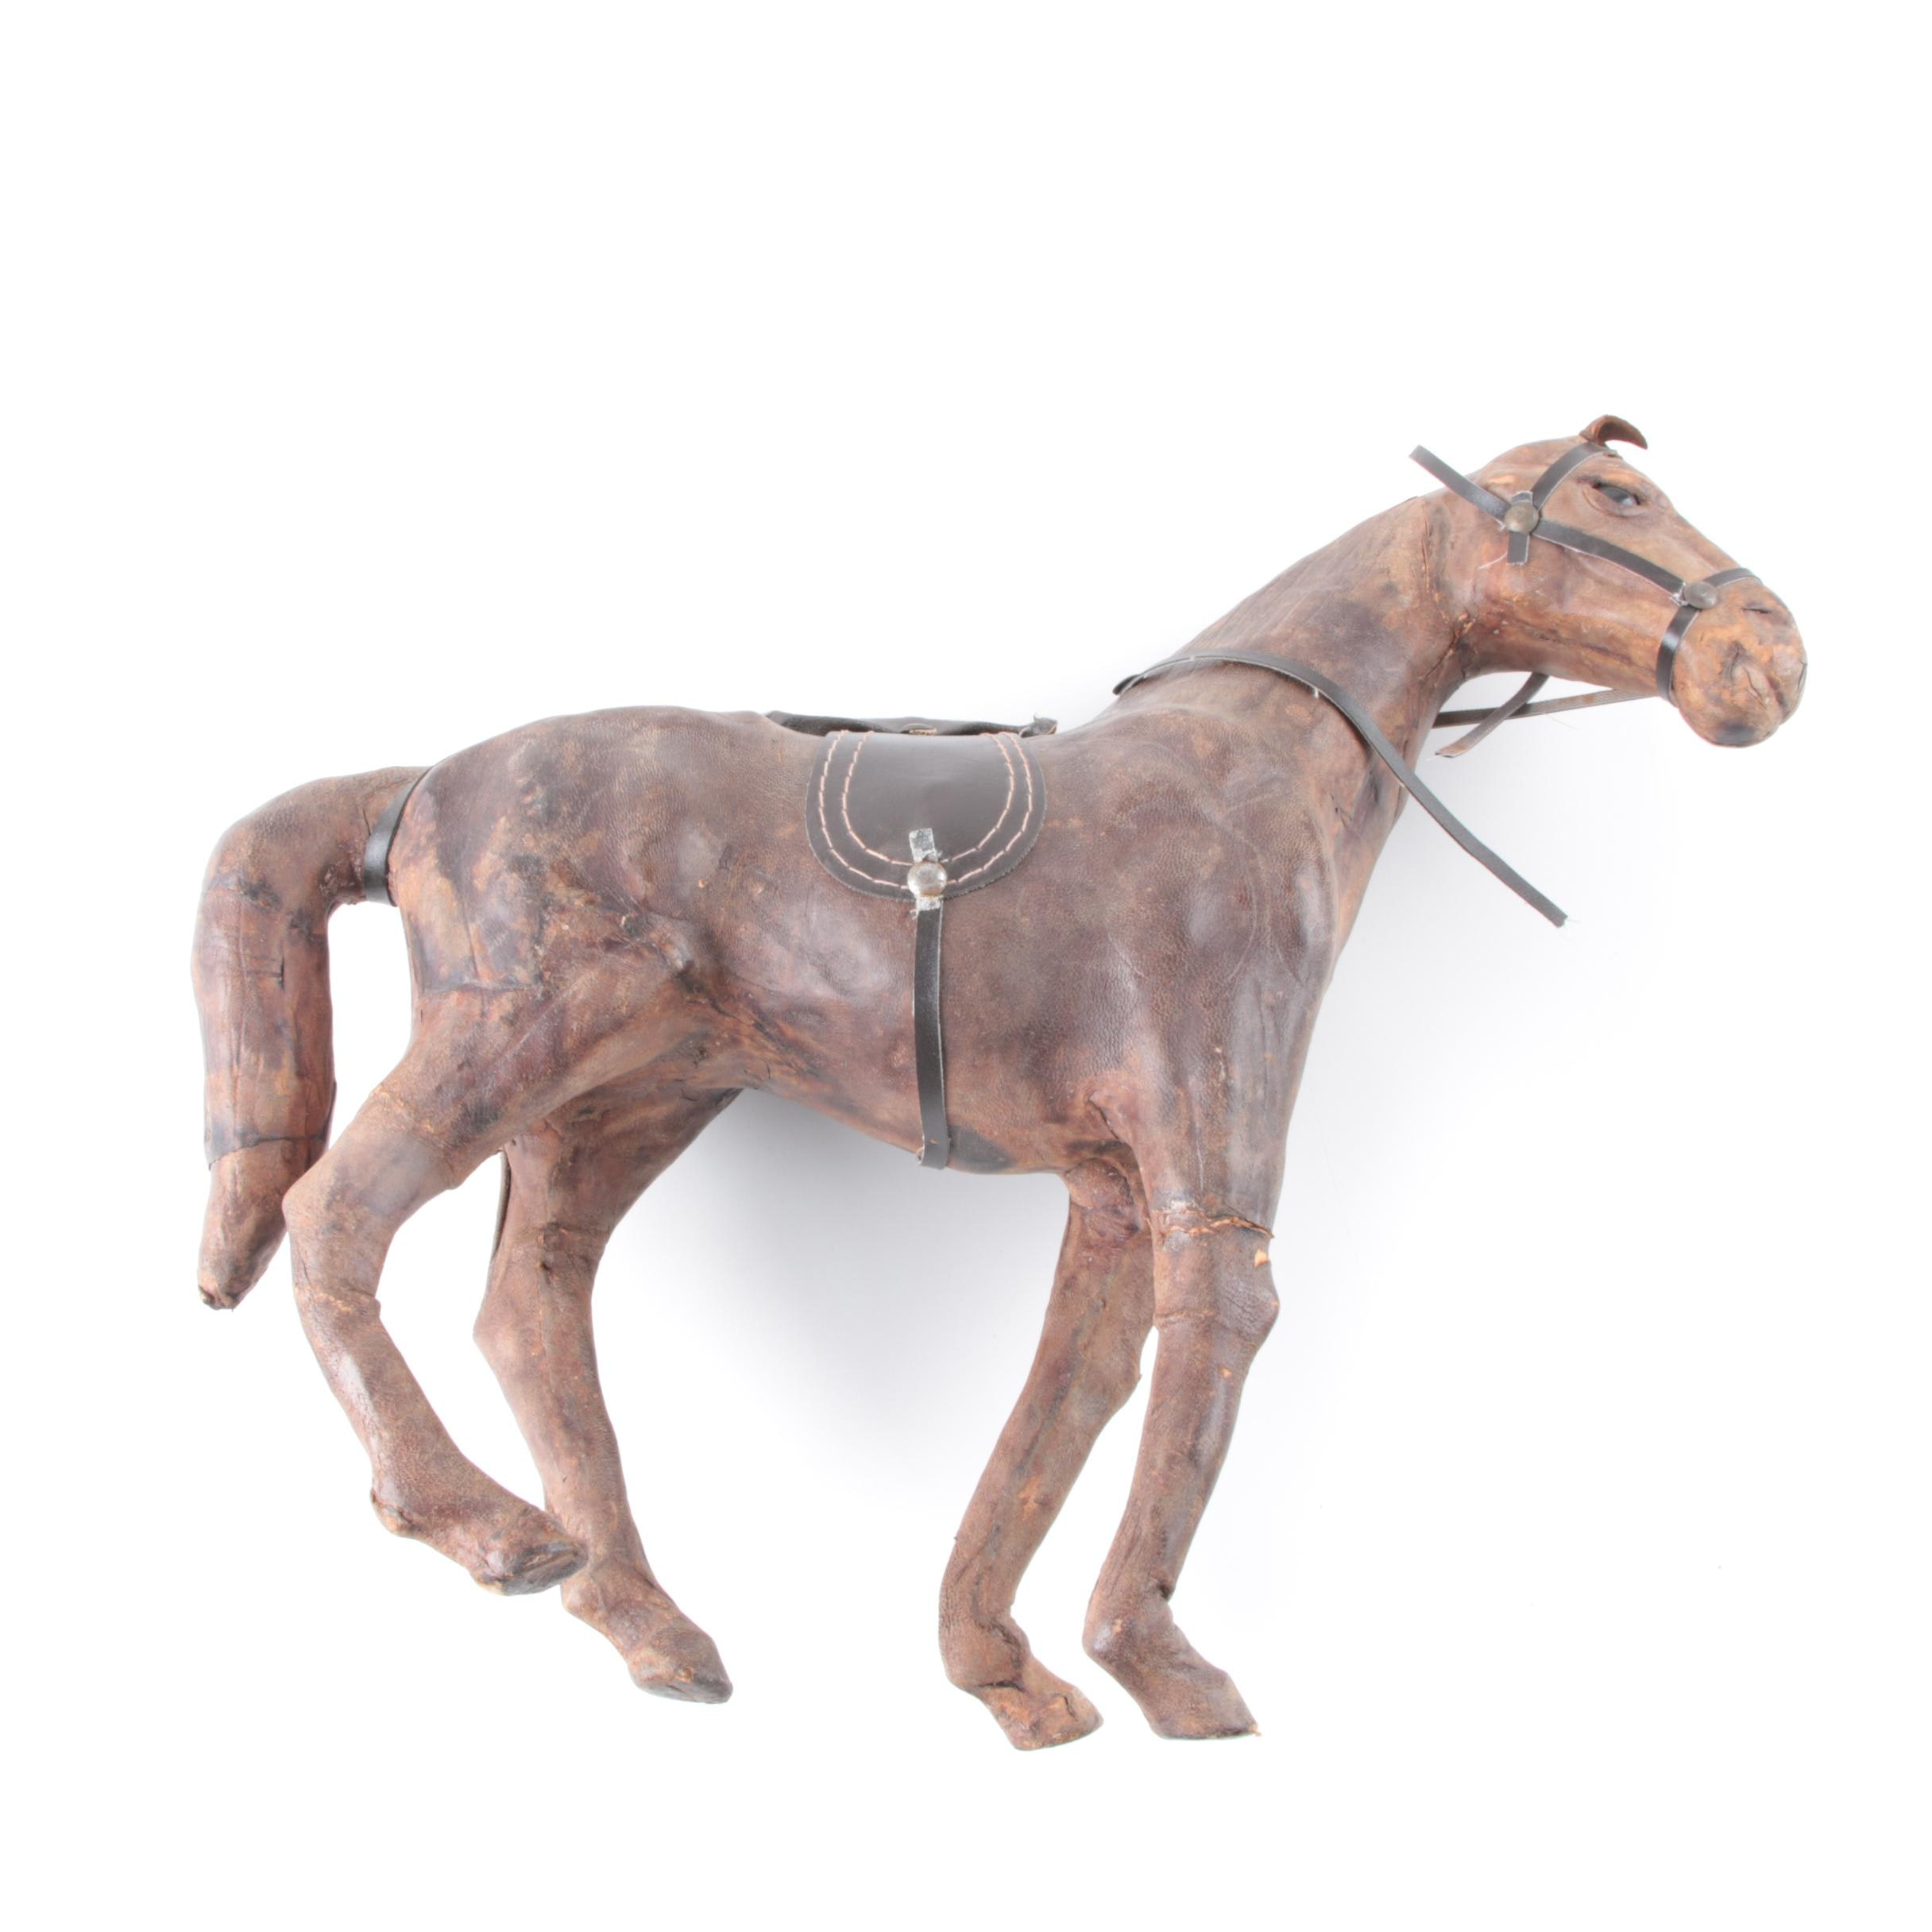 Vintage Leather Horse Toy Figurine